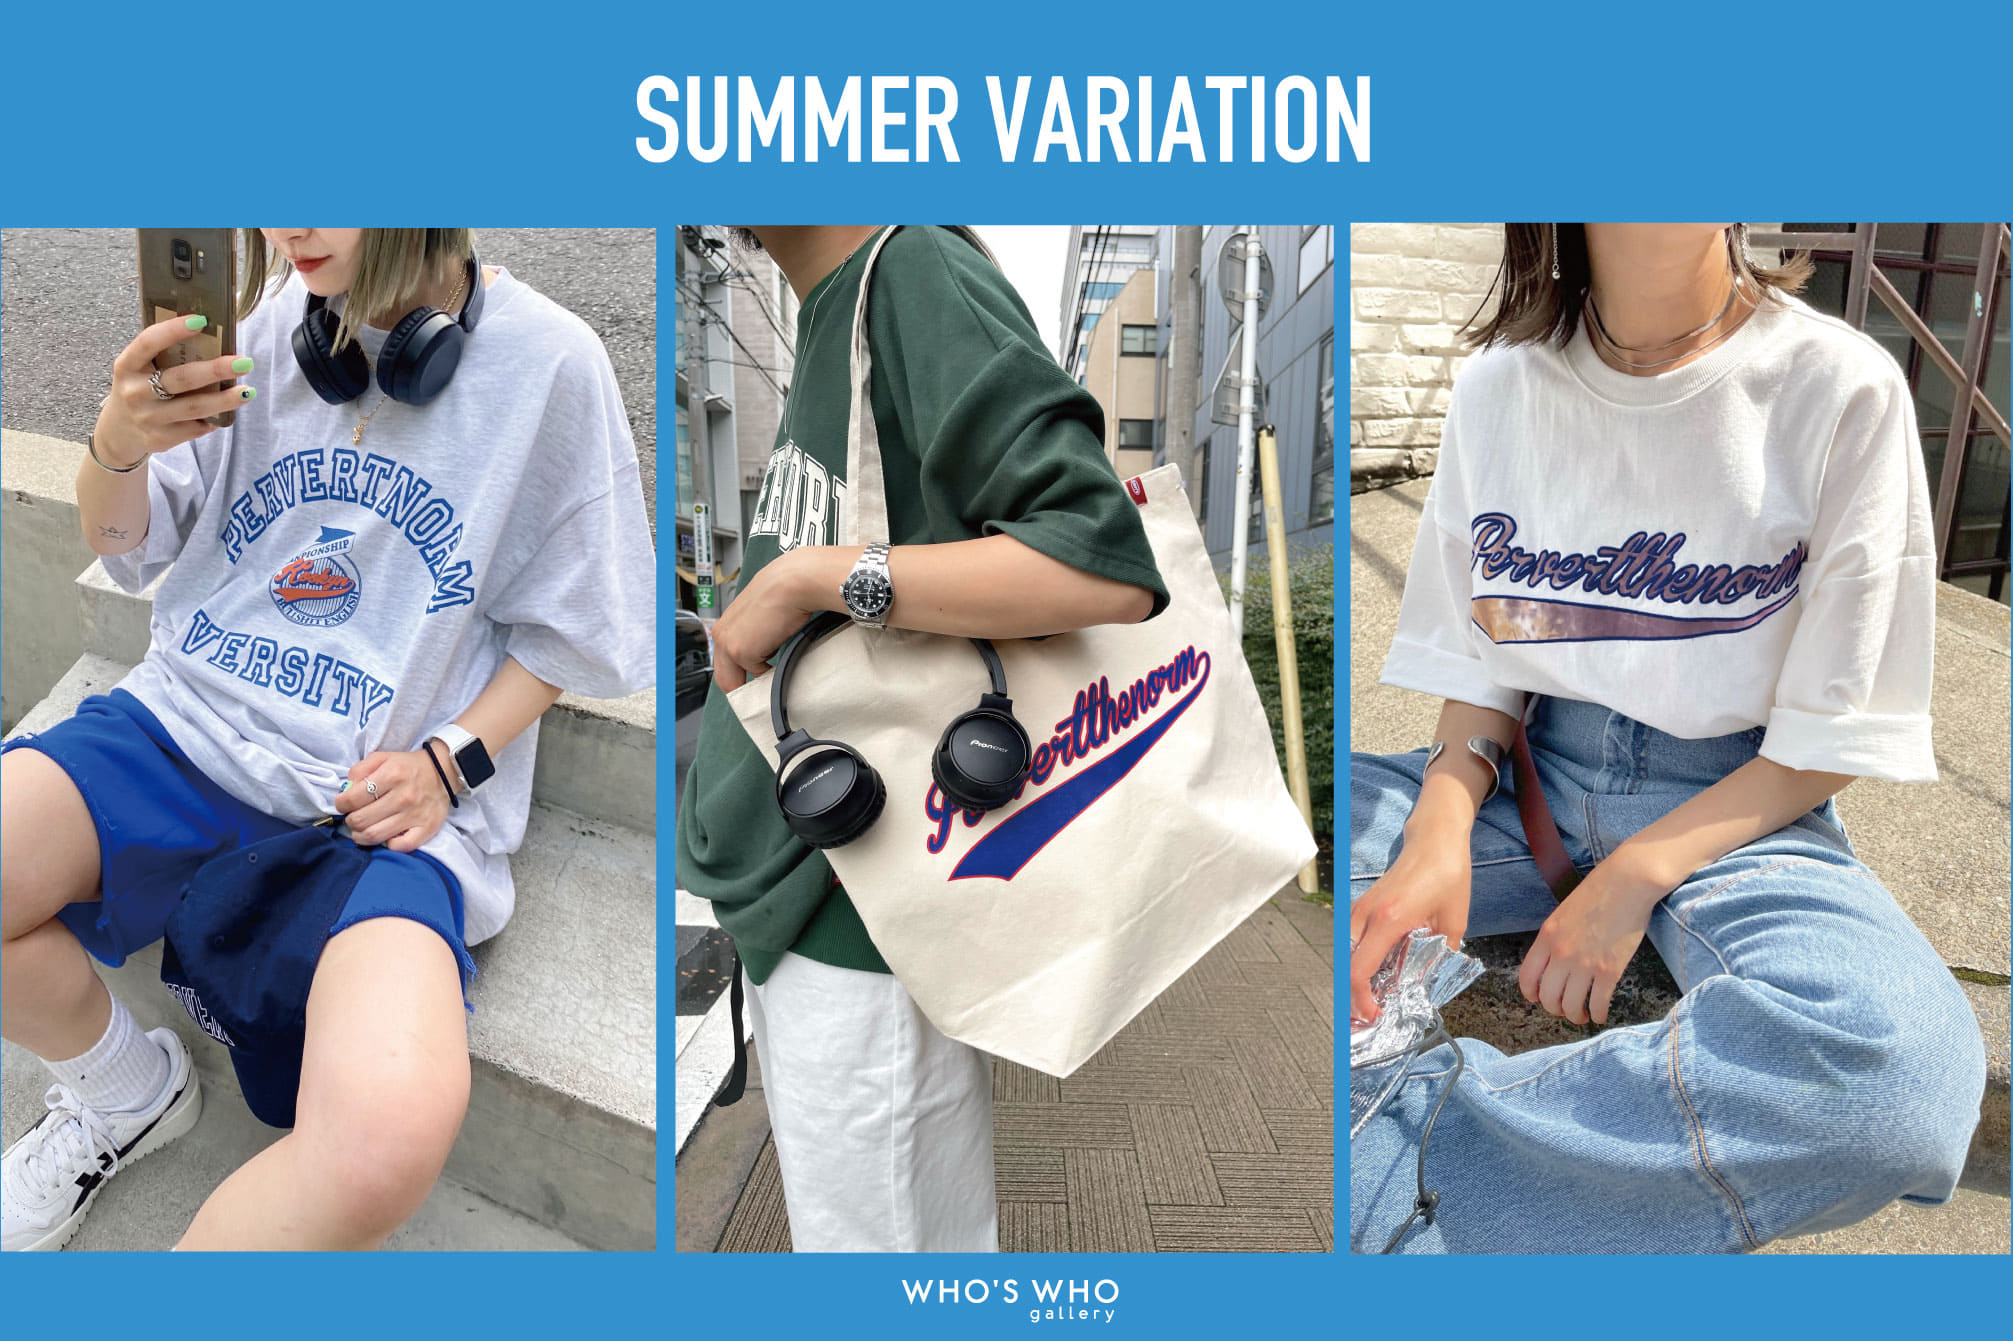 WHO'S WHO gallery 【SUMMER VARIATION】